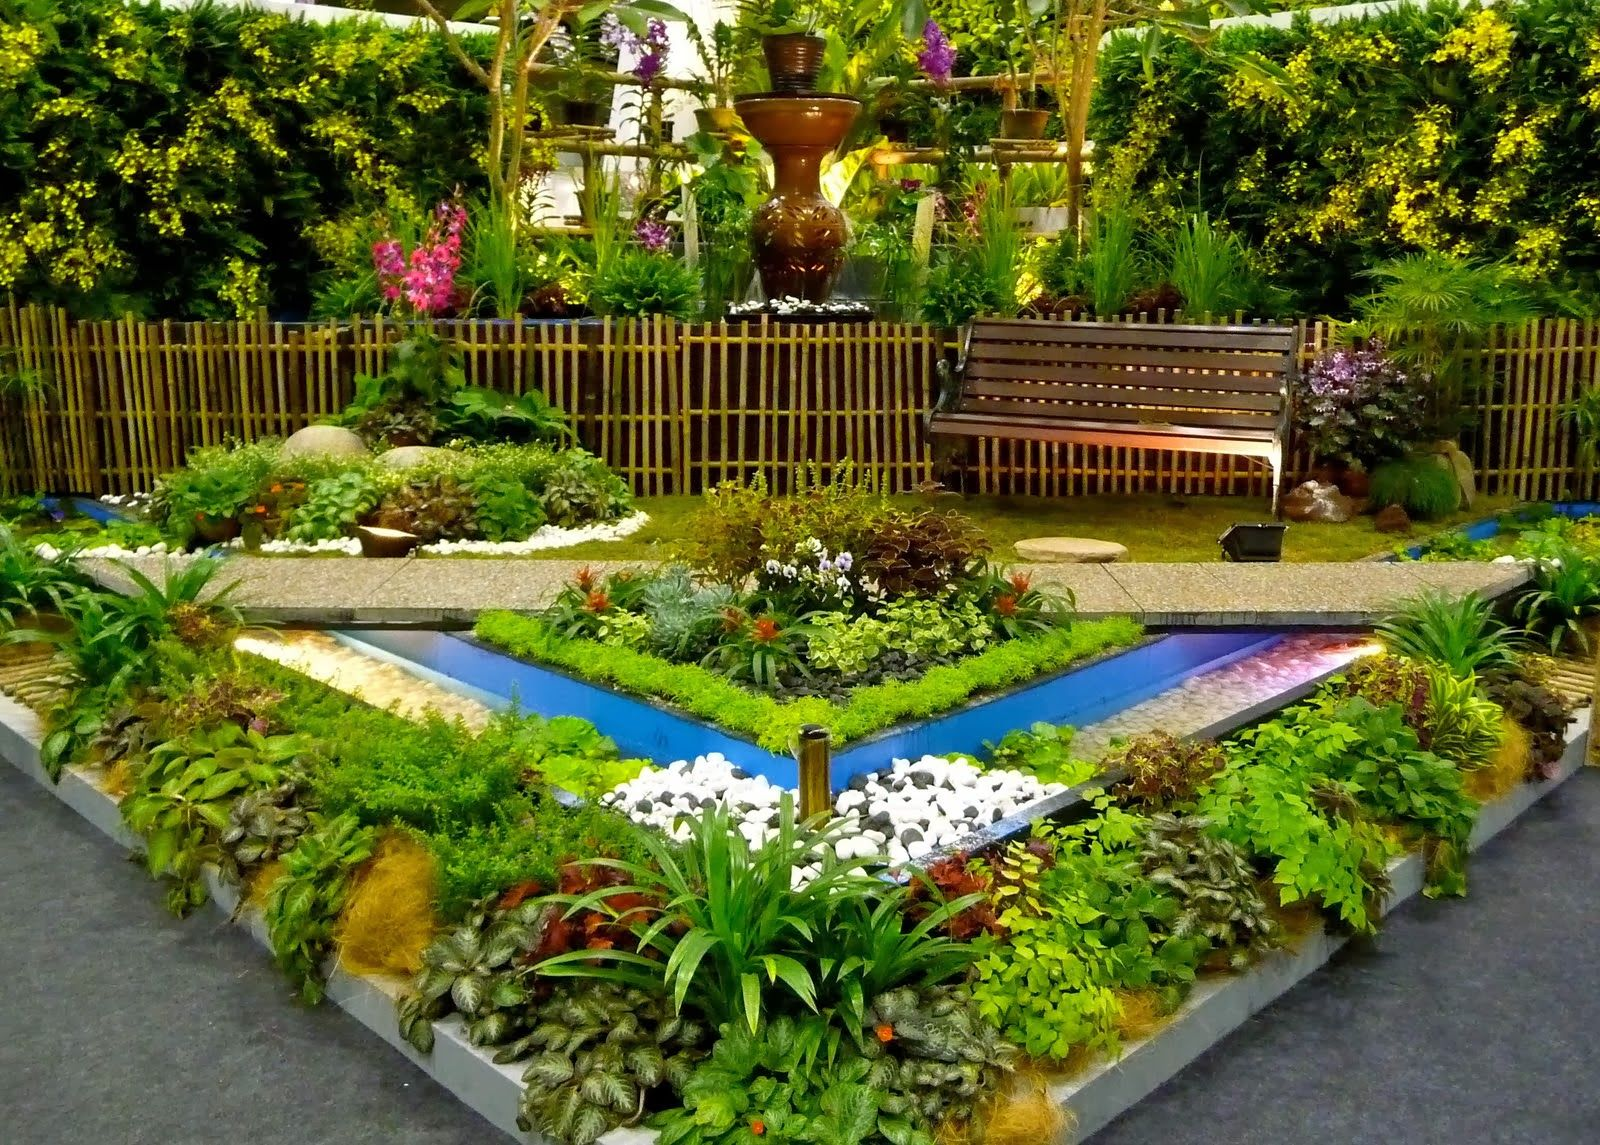 Best landscaping ideas i have ever seen wow design for Landscape design